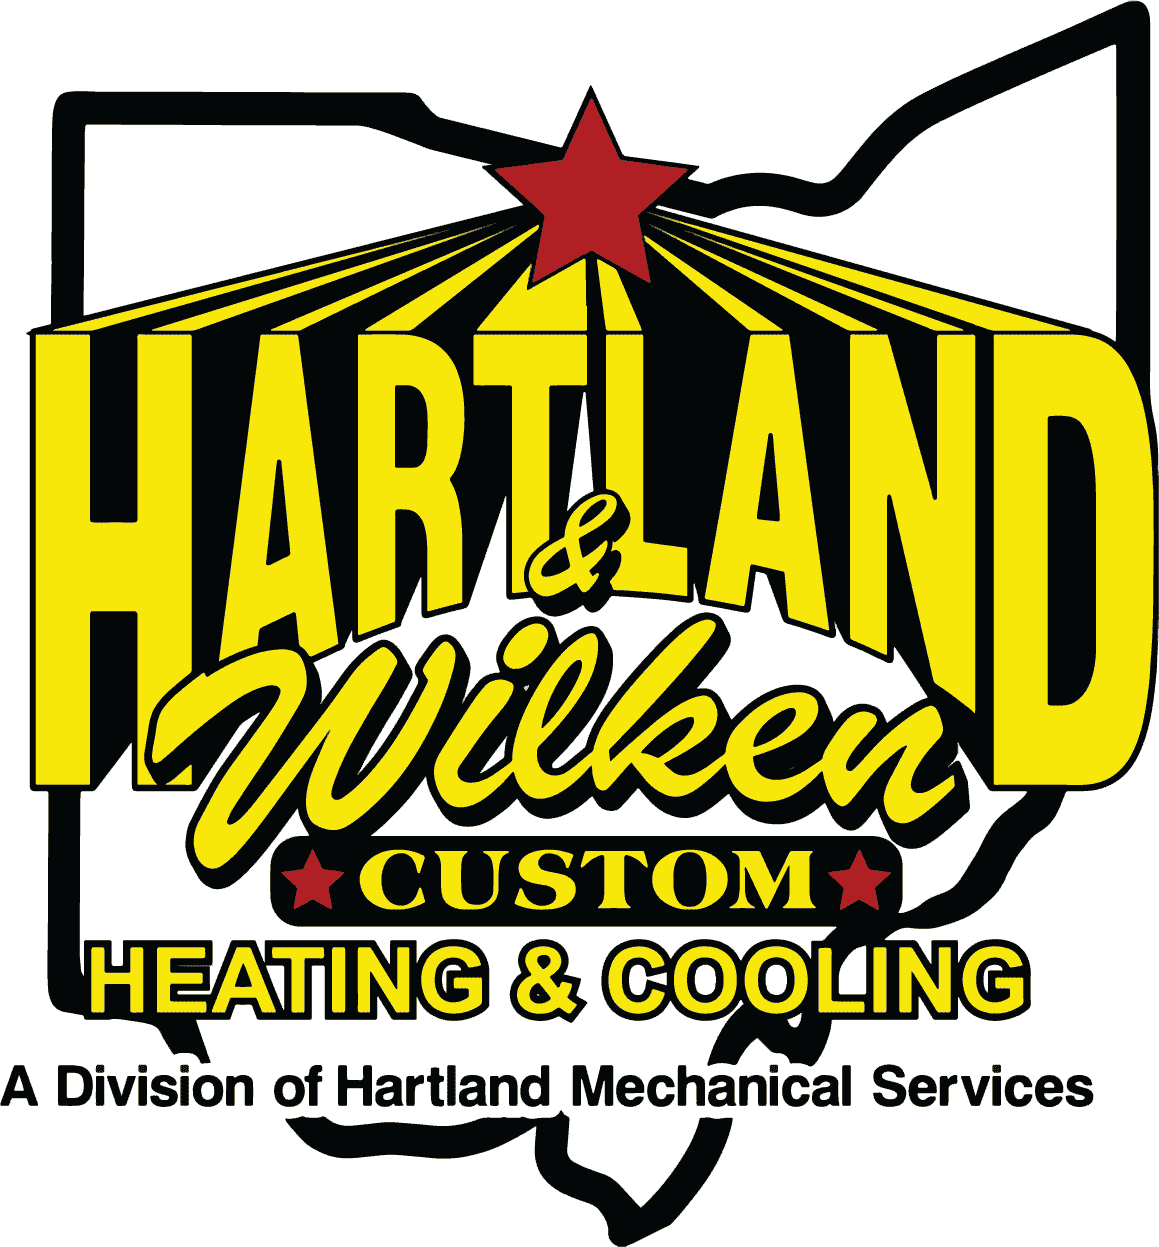 Hartland & Wilken Custom Heating & Cooling